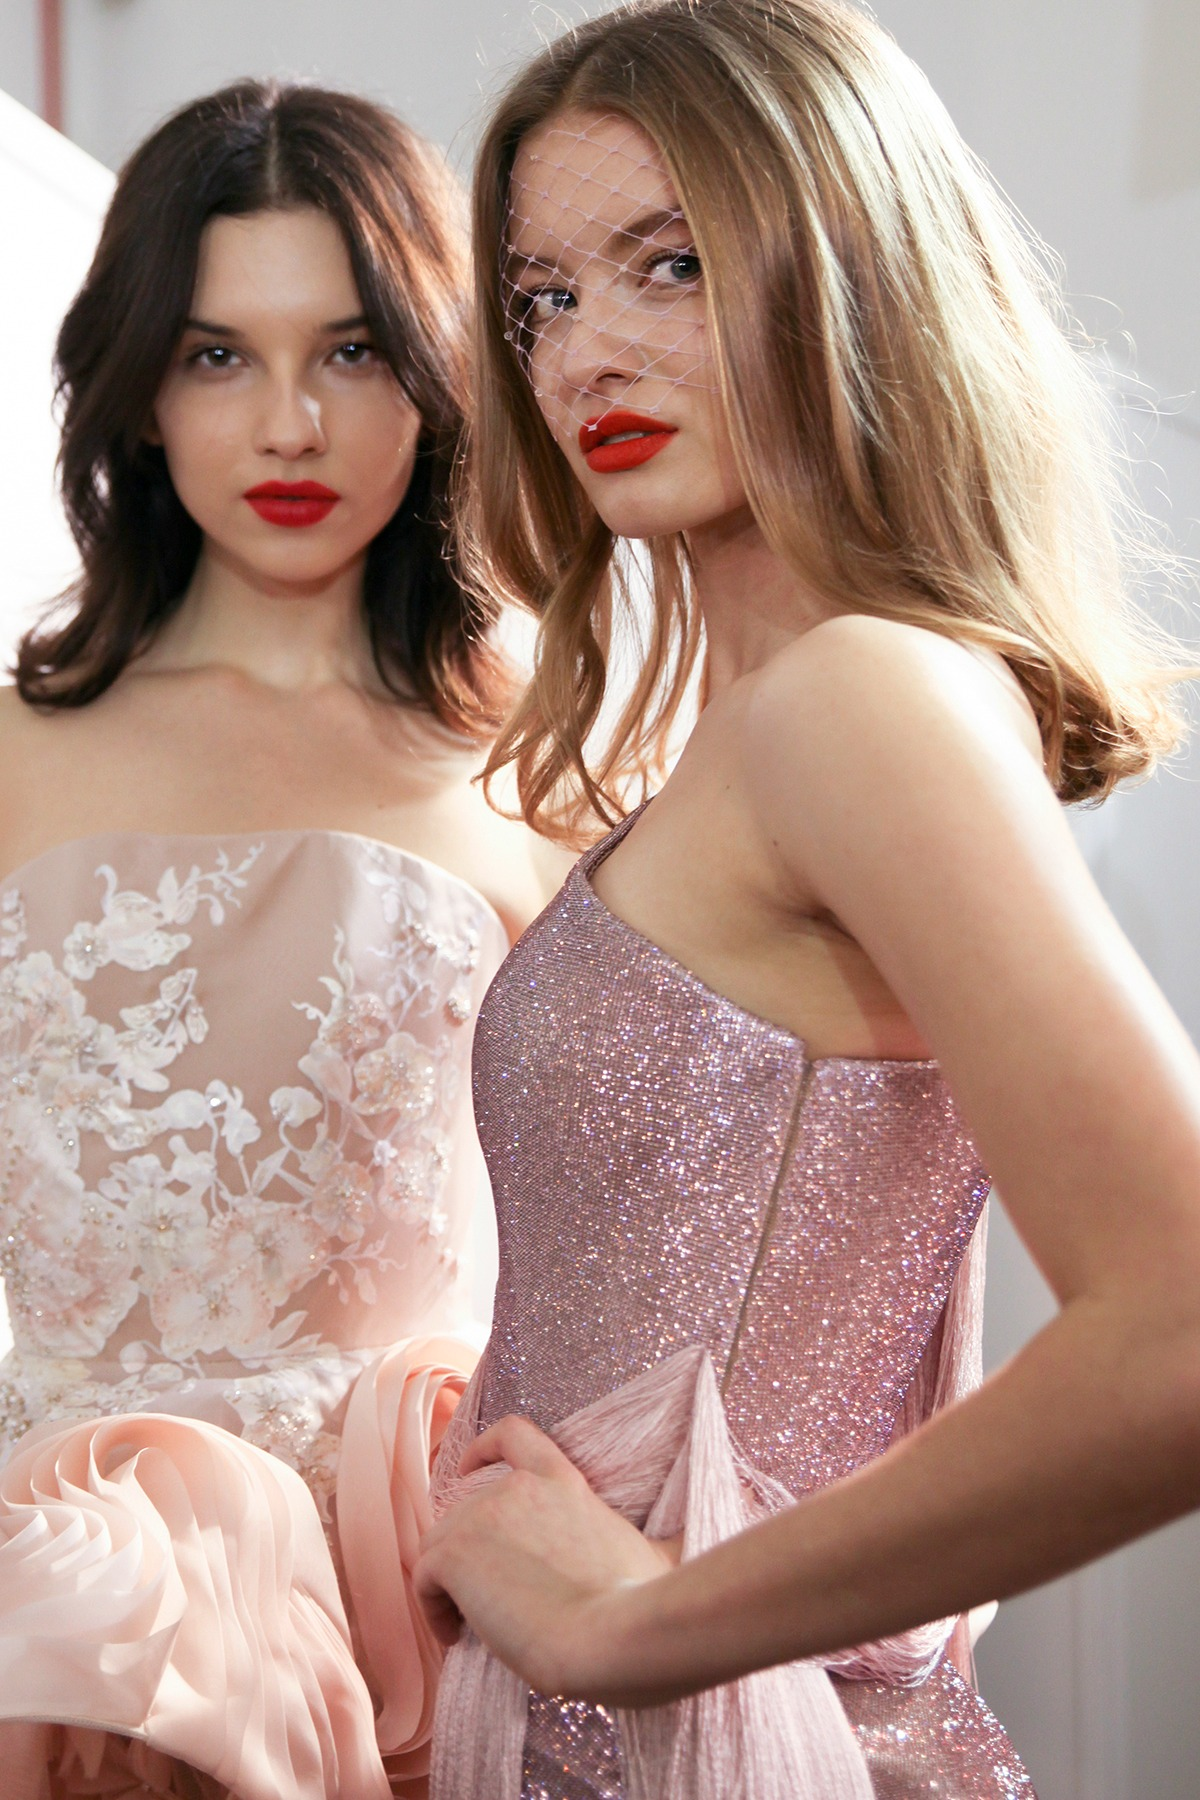 Most Popular Blog Posts of 2018 I Backstage at Ralph and Russo Spring 2018 Couture Runway I Paris Fashion Week #HighFashion #Couture